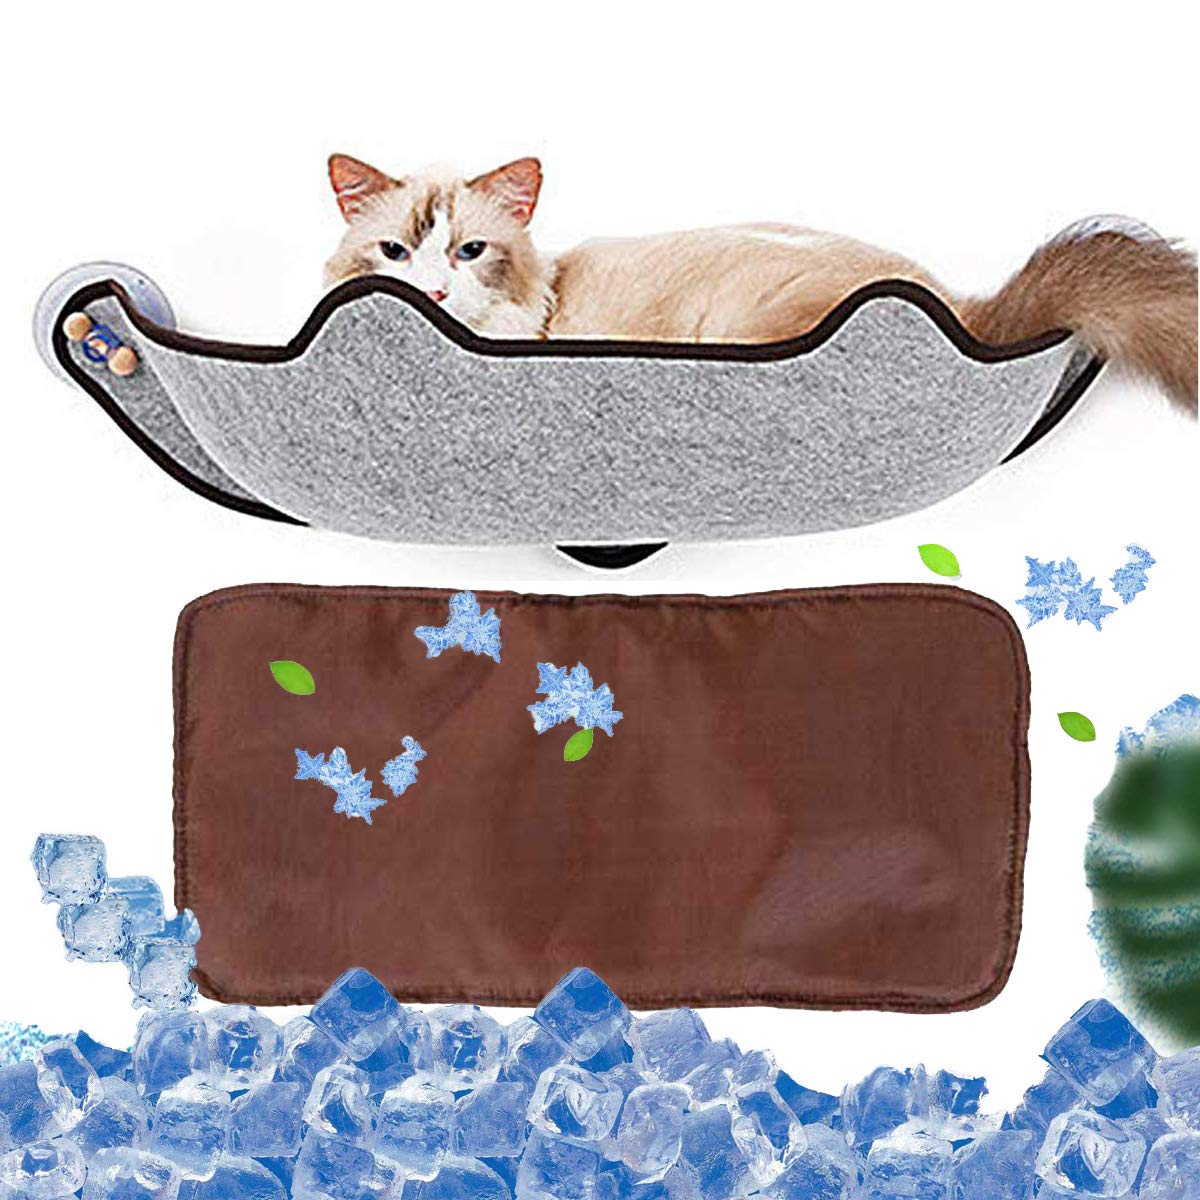 KOBWA Cat Window Bed, Cat Window Perch Mounted Cat Bed Seat Lounger with 1 Mat and 3 Large Suction Cups Cat Resting Sofa Safe Sunbath Holds up to 40 lb by KOBWA